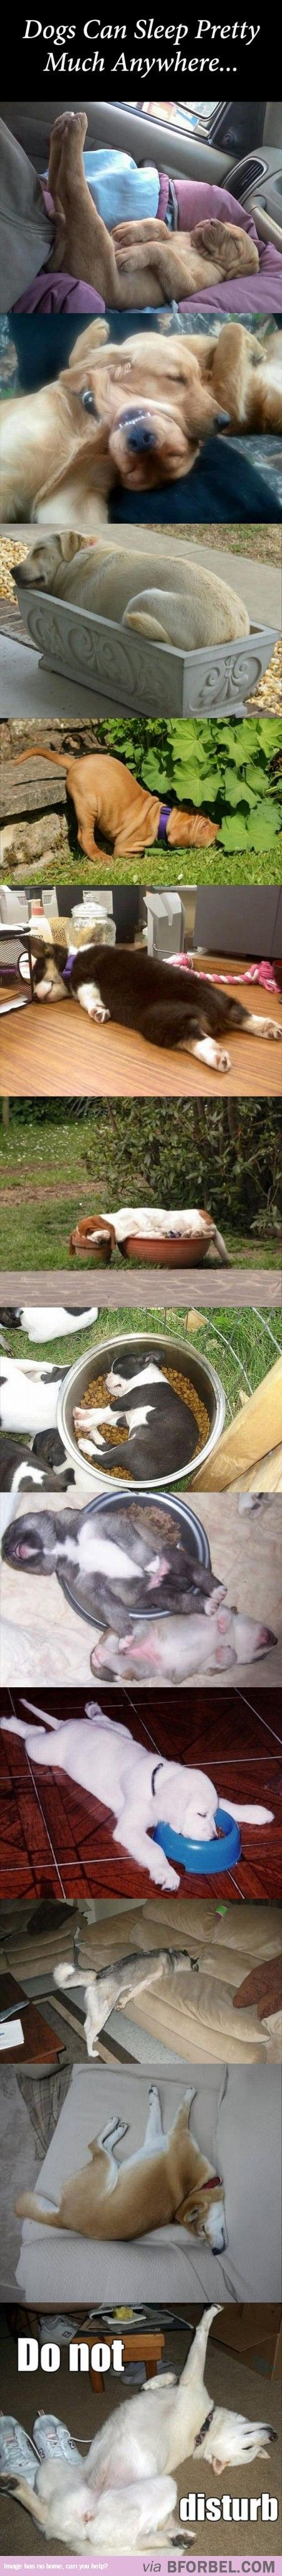 Dogs Can Sleep Anywhere, In Any Position..